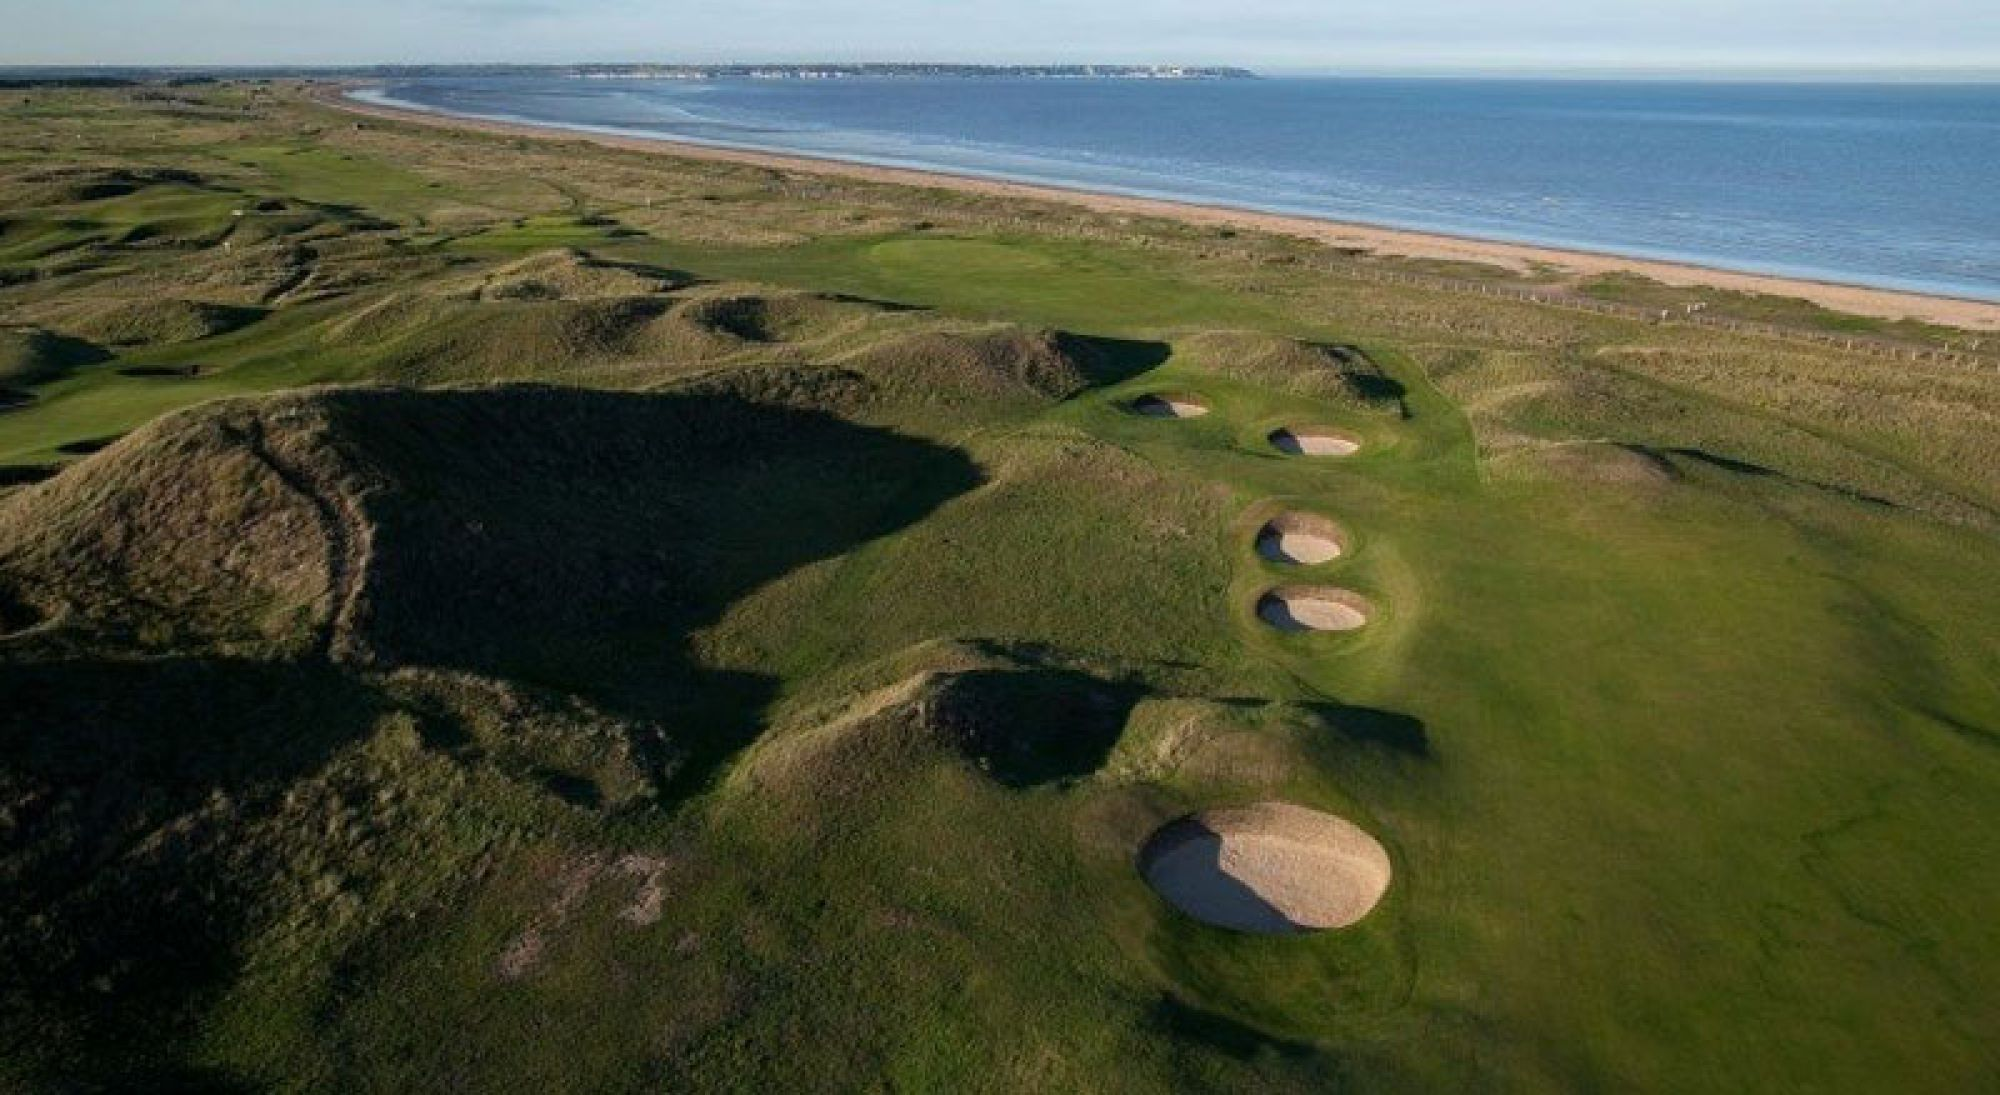 View Royal St. George's Golf Club's picturesque golf course within striking Kent.